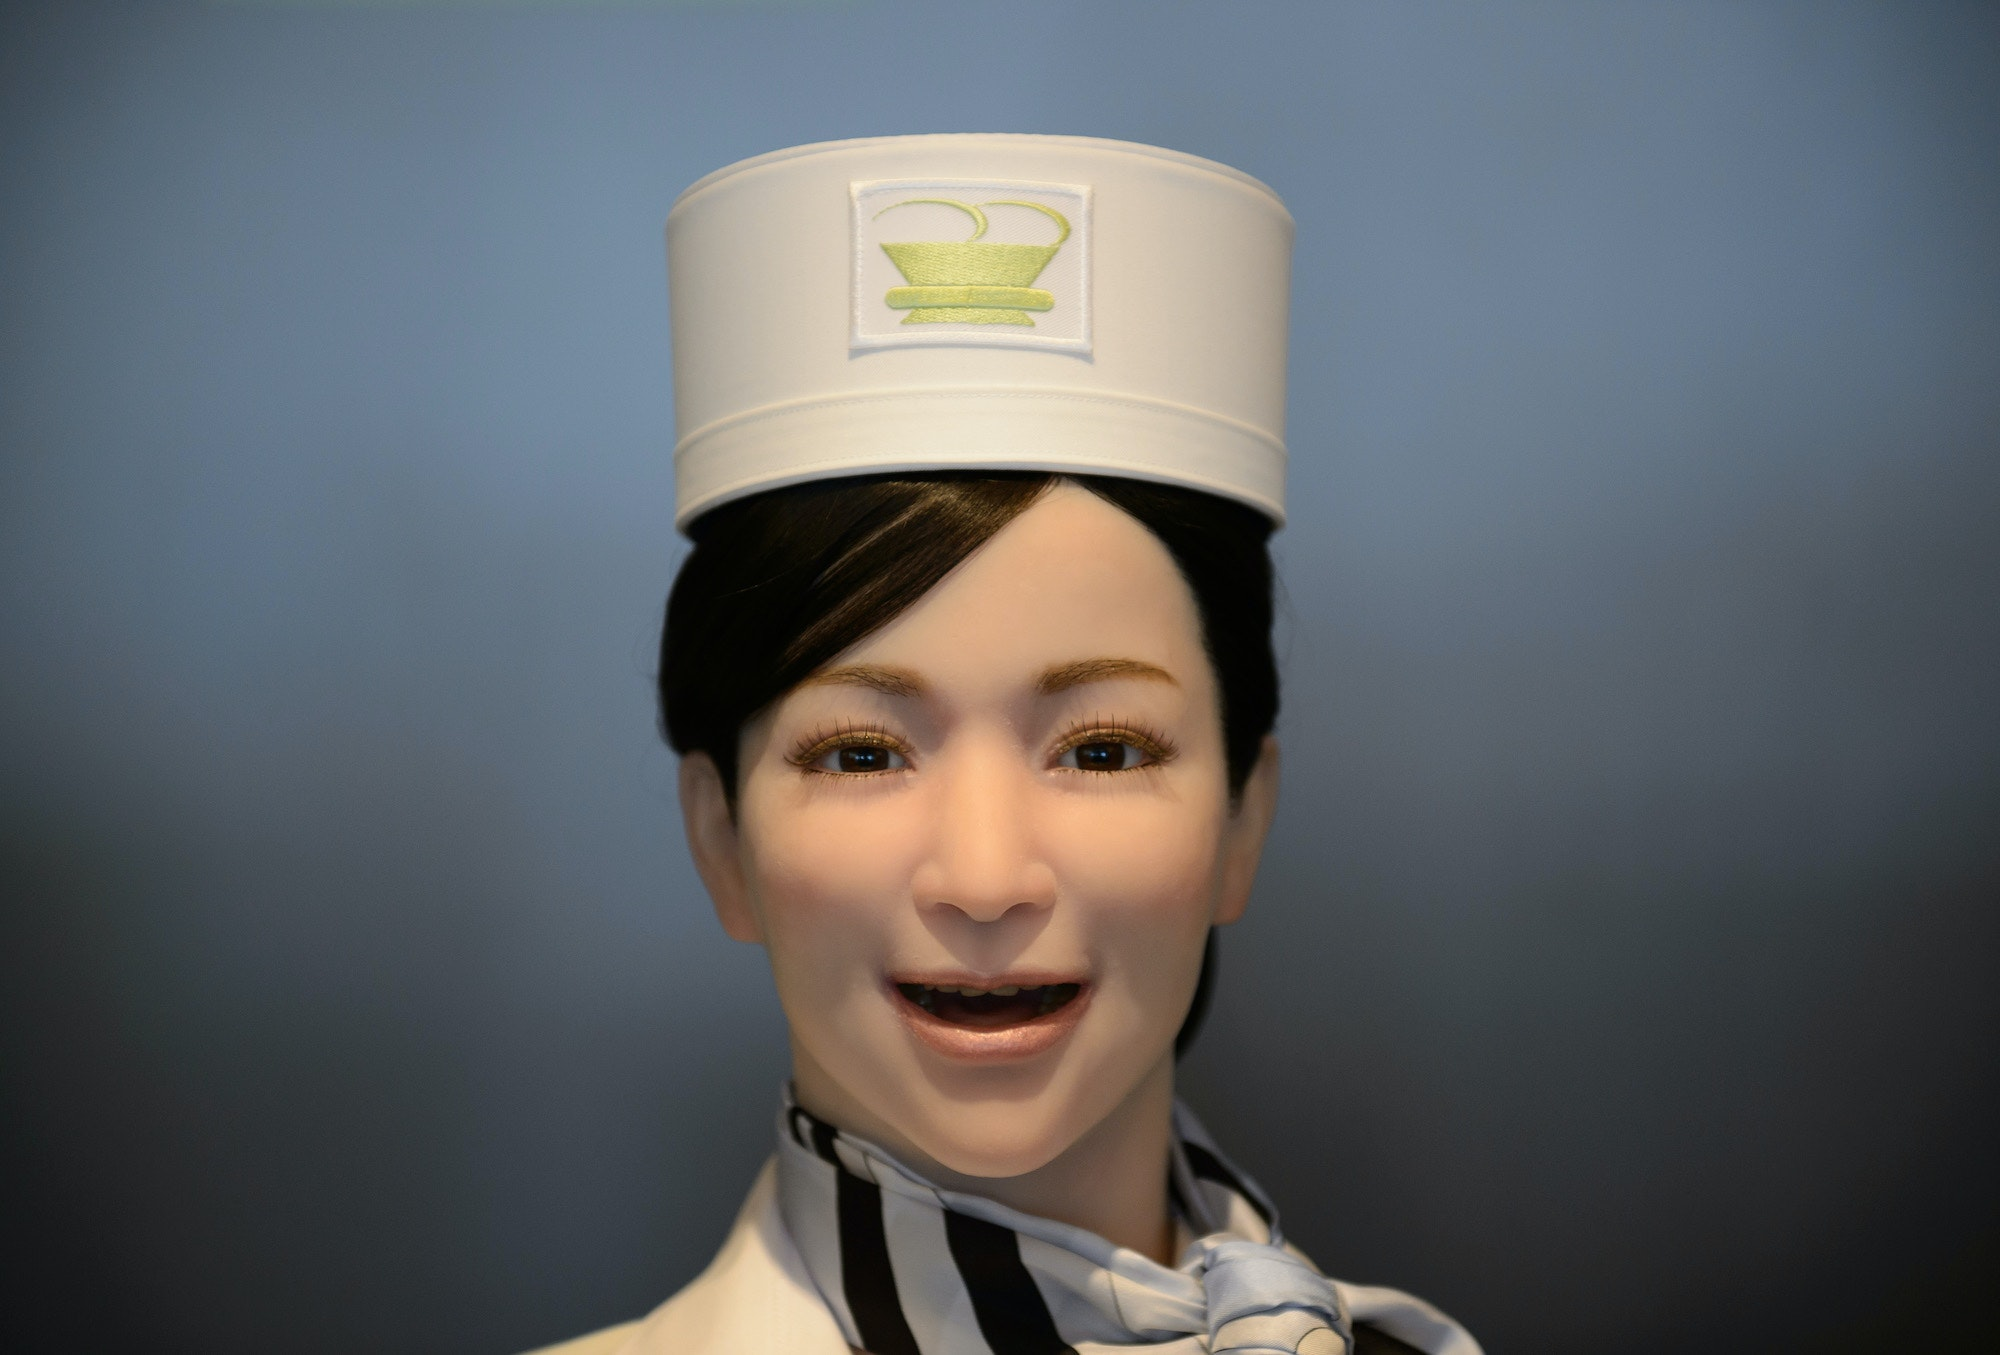 A robot receptionist at the Henn na Hotel, Japan